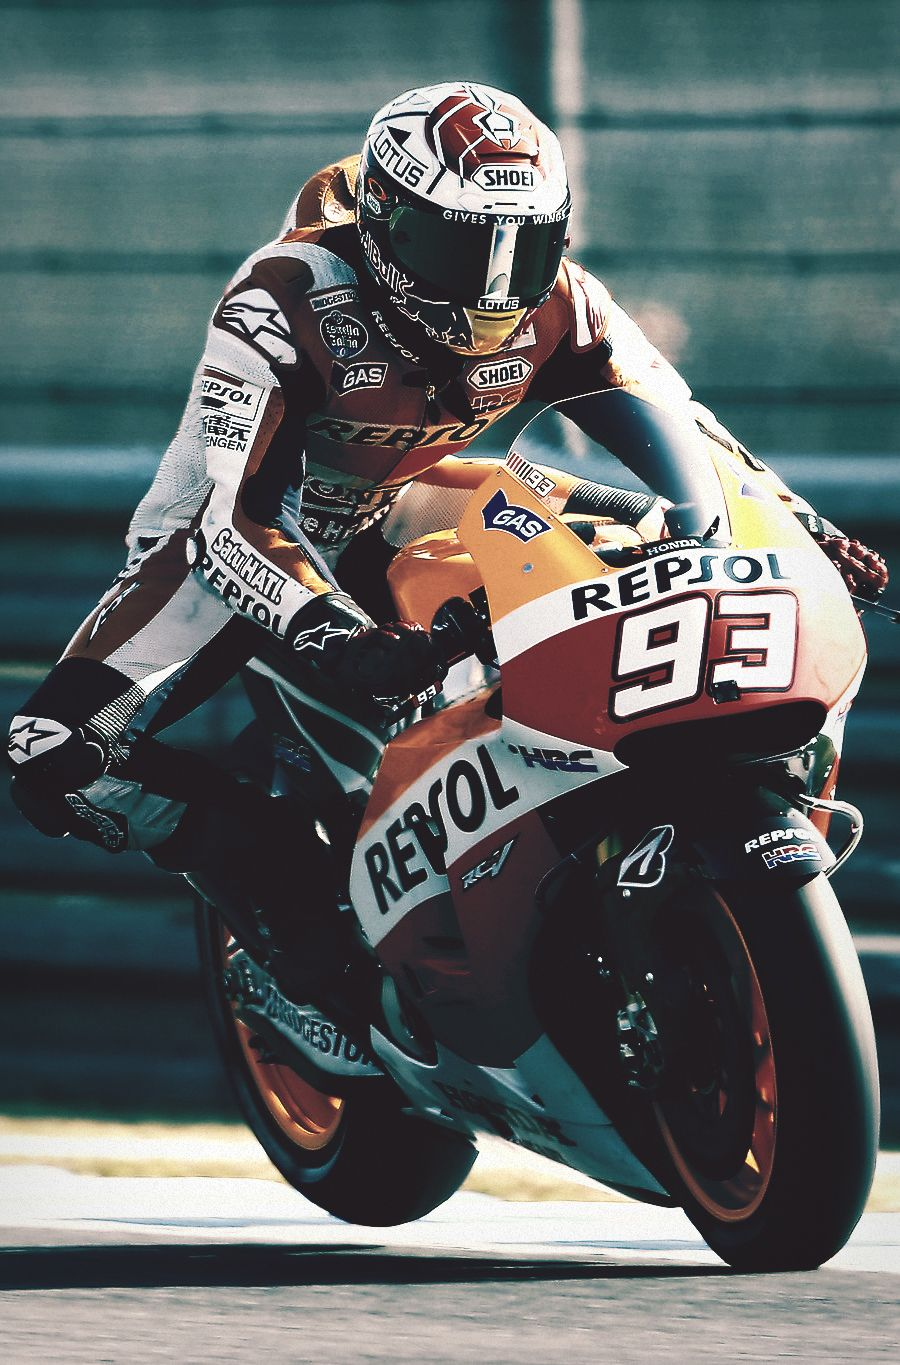 Marc Marquez 93 With Images Marc Marquez Motorcycle Racing Bikes